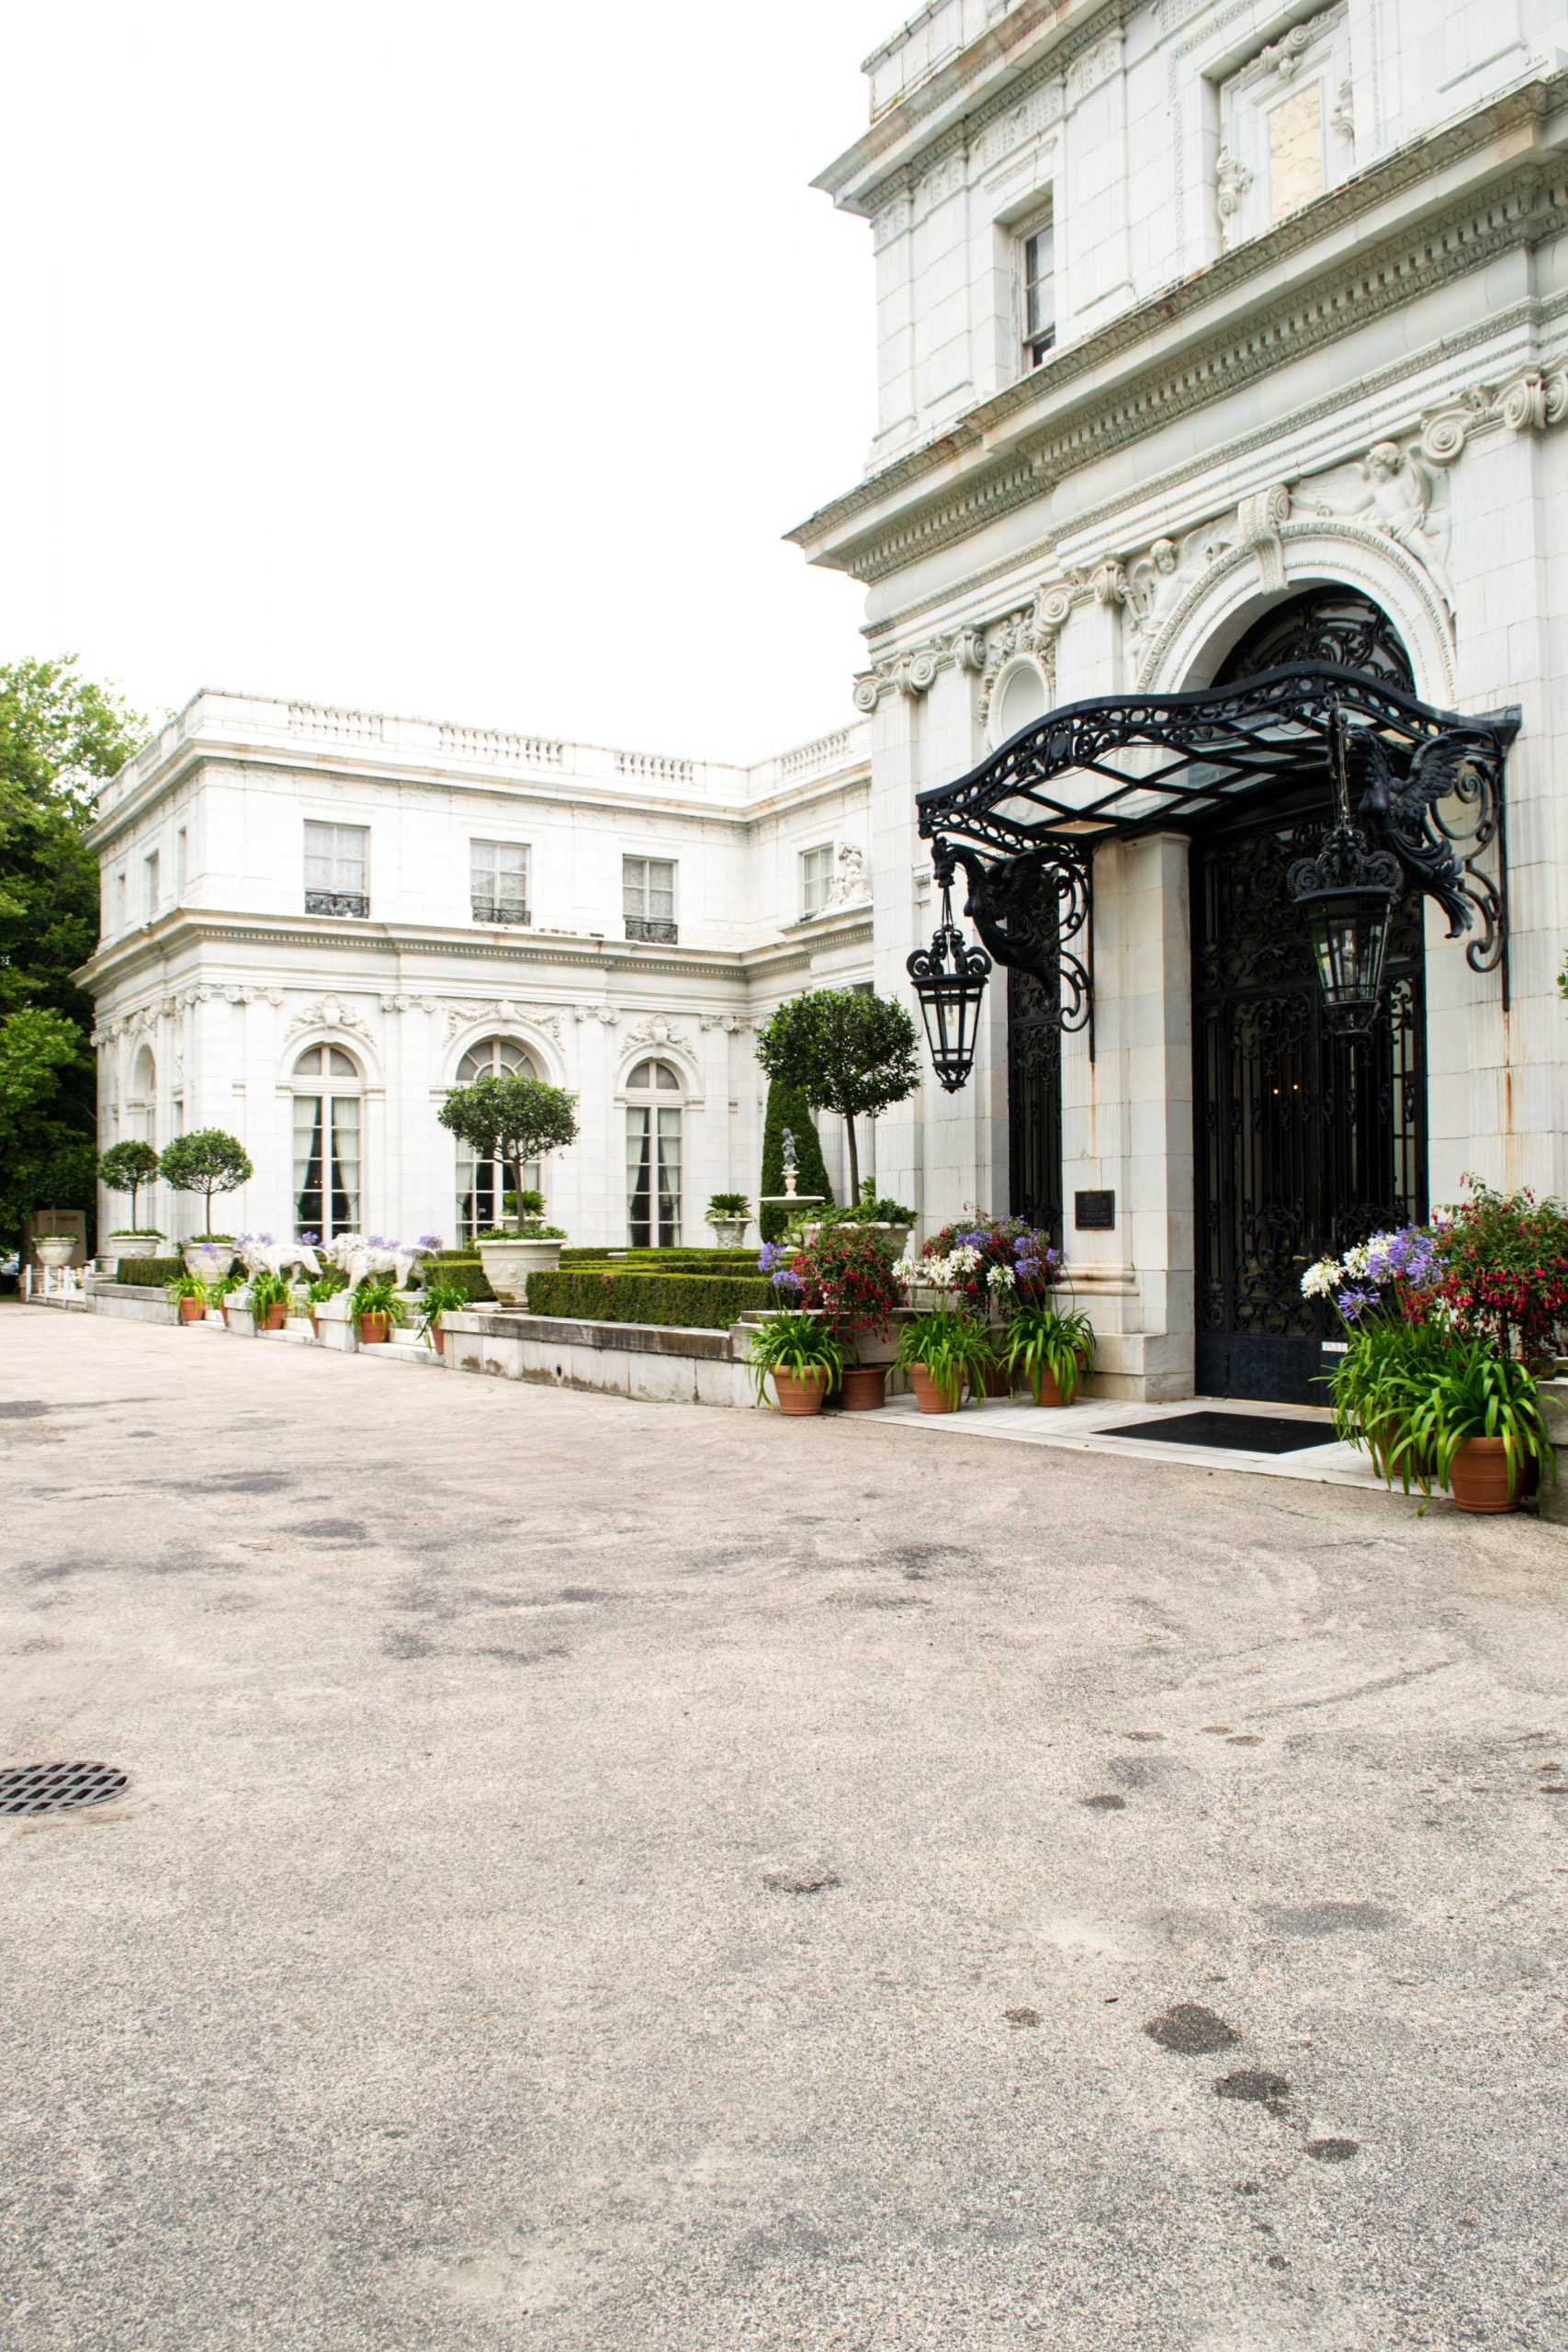 4 Things That Surprised Me While Visiting Rosecliff Mansion